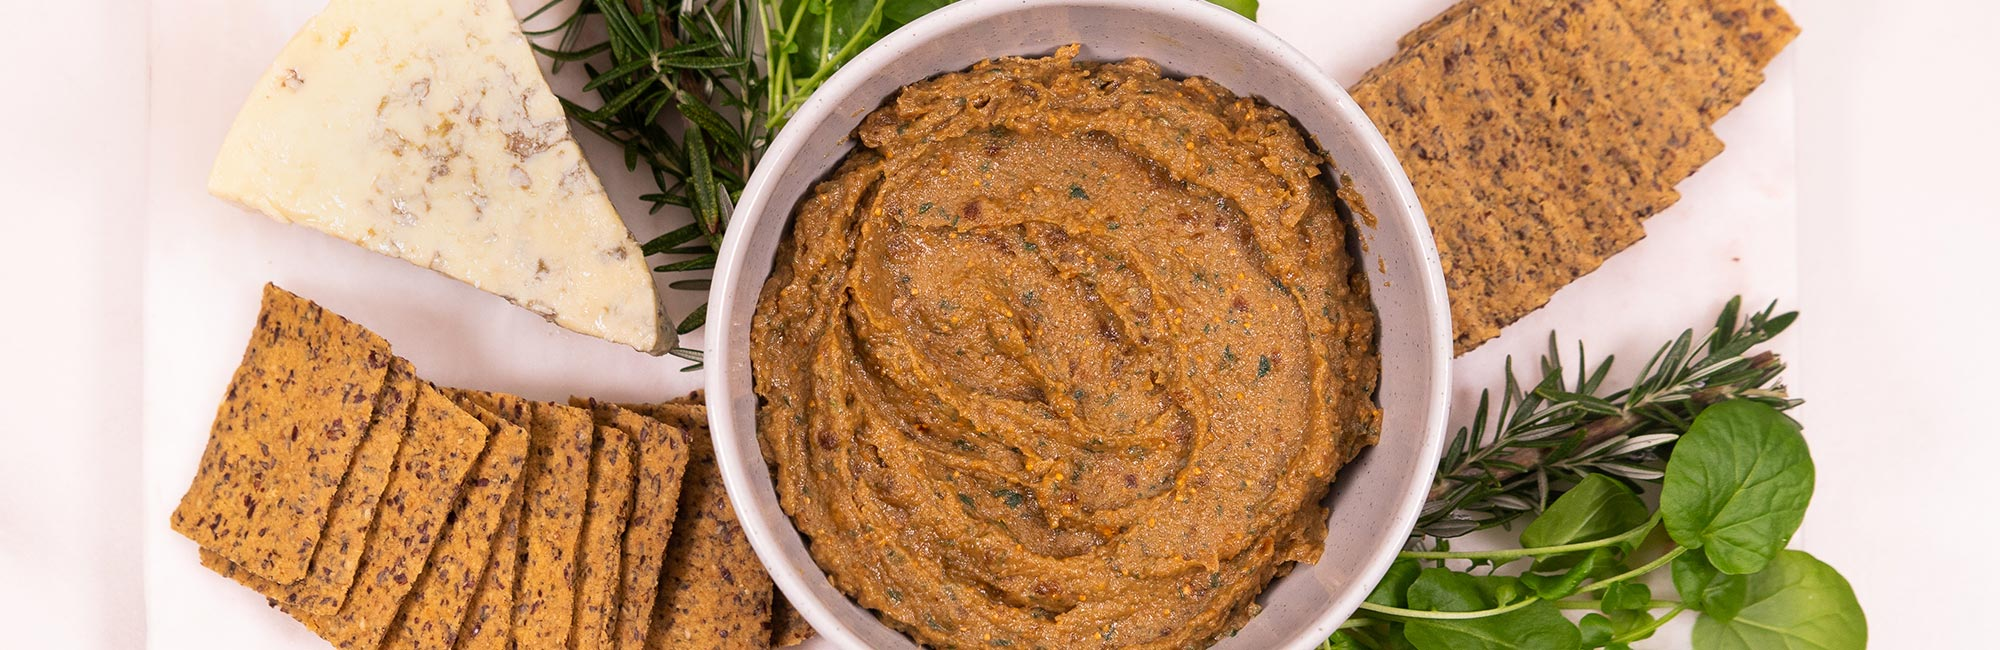 sicilian olive fig walnut pate recipe